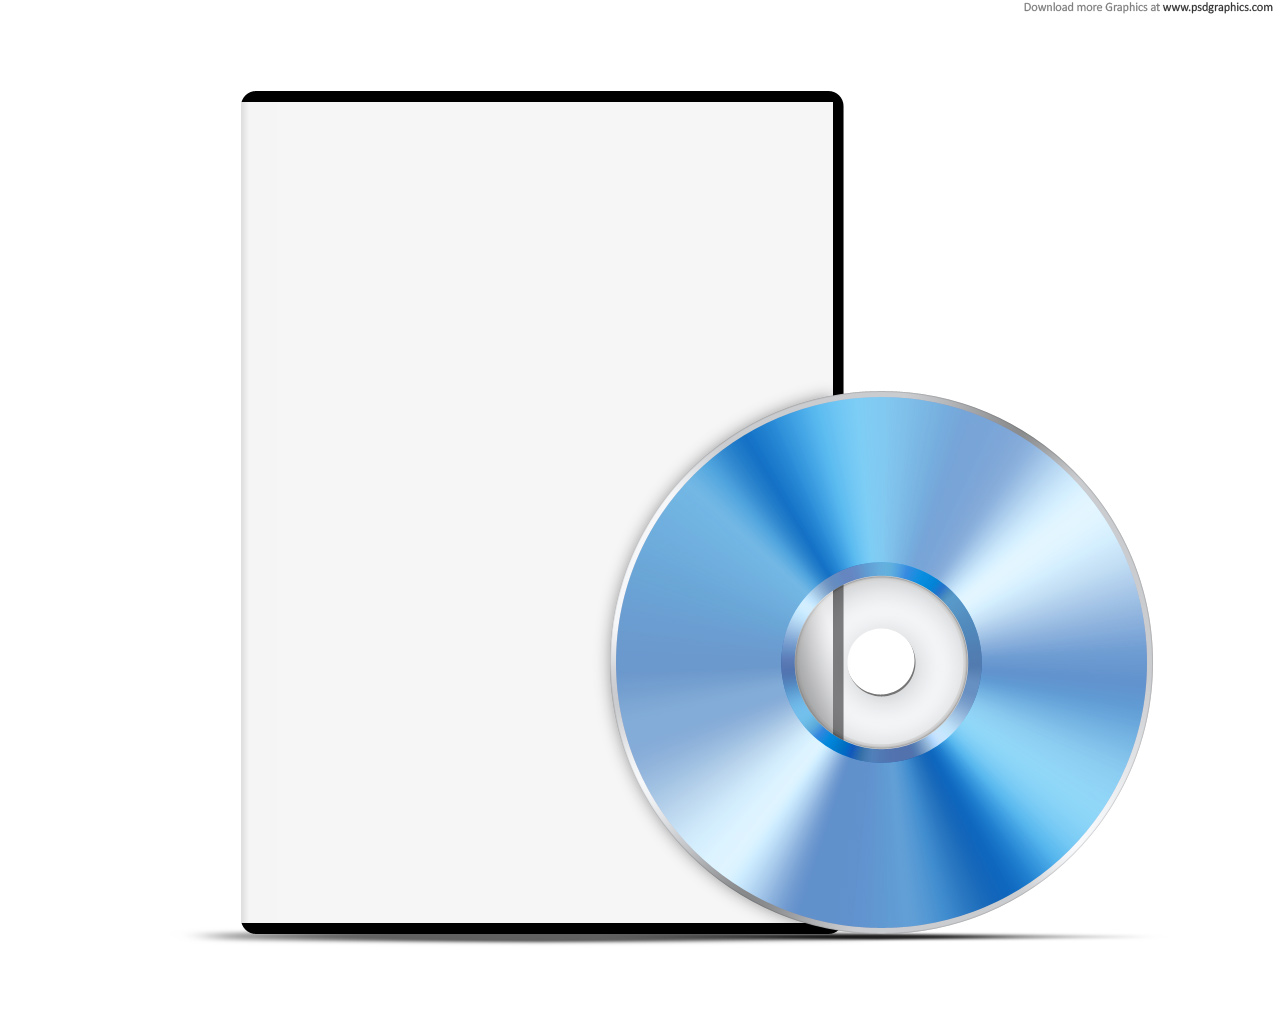 15 Blank DVD Cover Template PSD Images